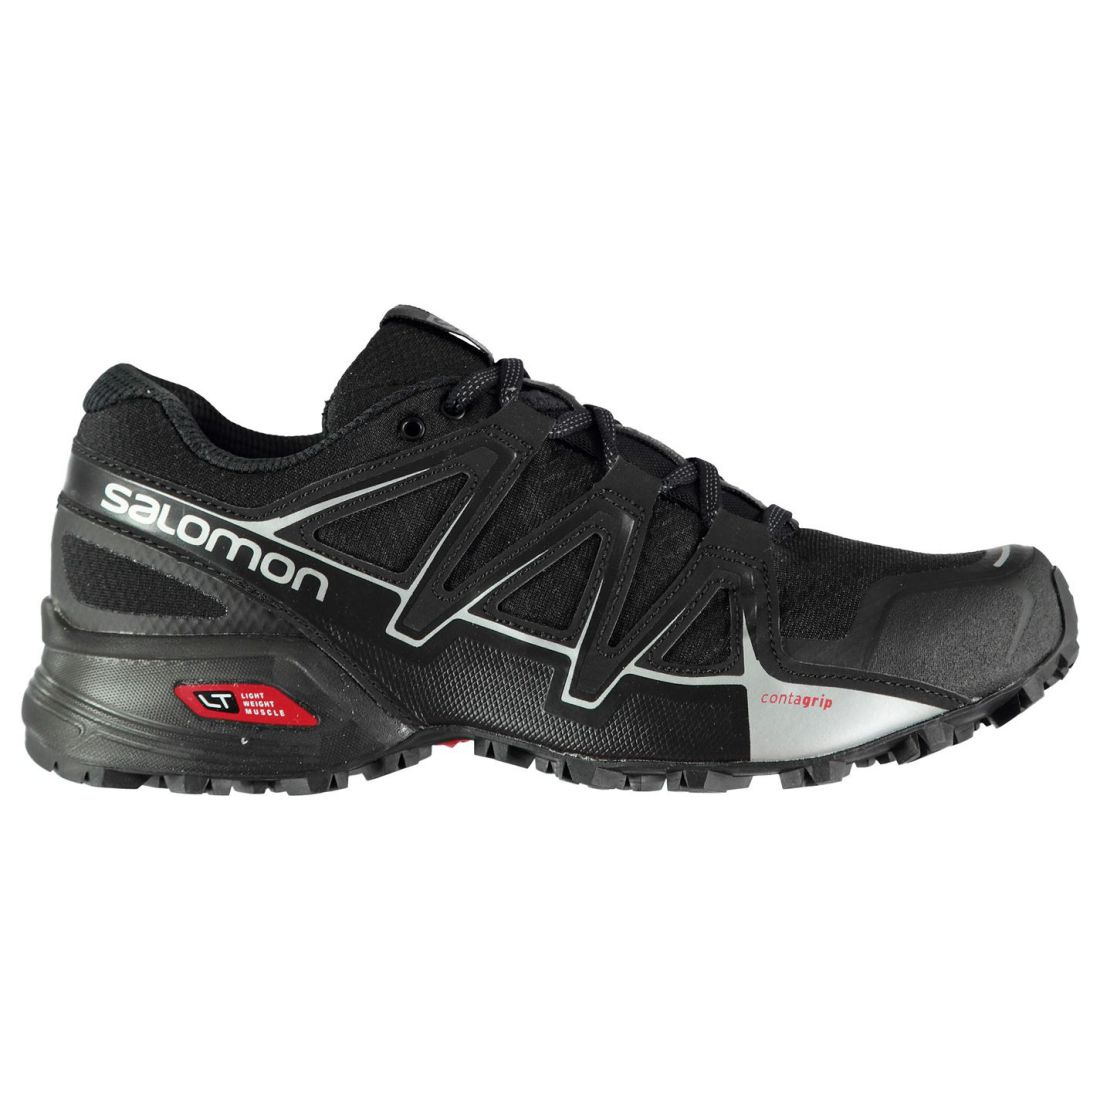 Salomon Speedcross Vario 2 Trail Running shoes Mens Gents Laces Fastened